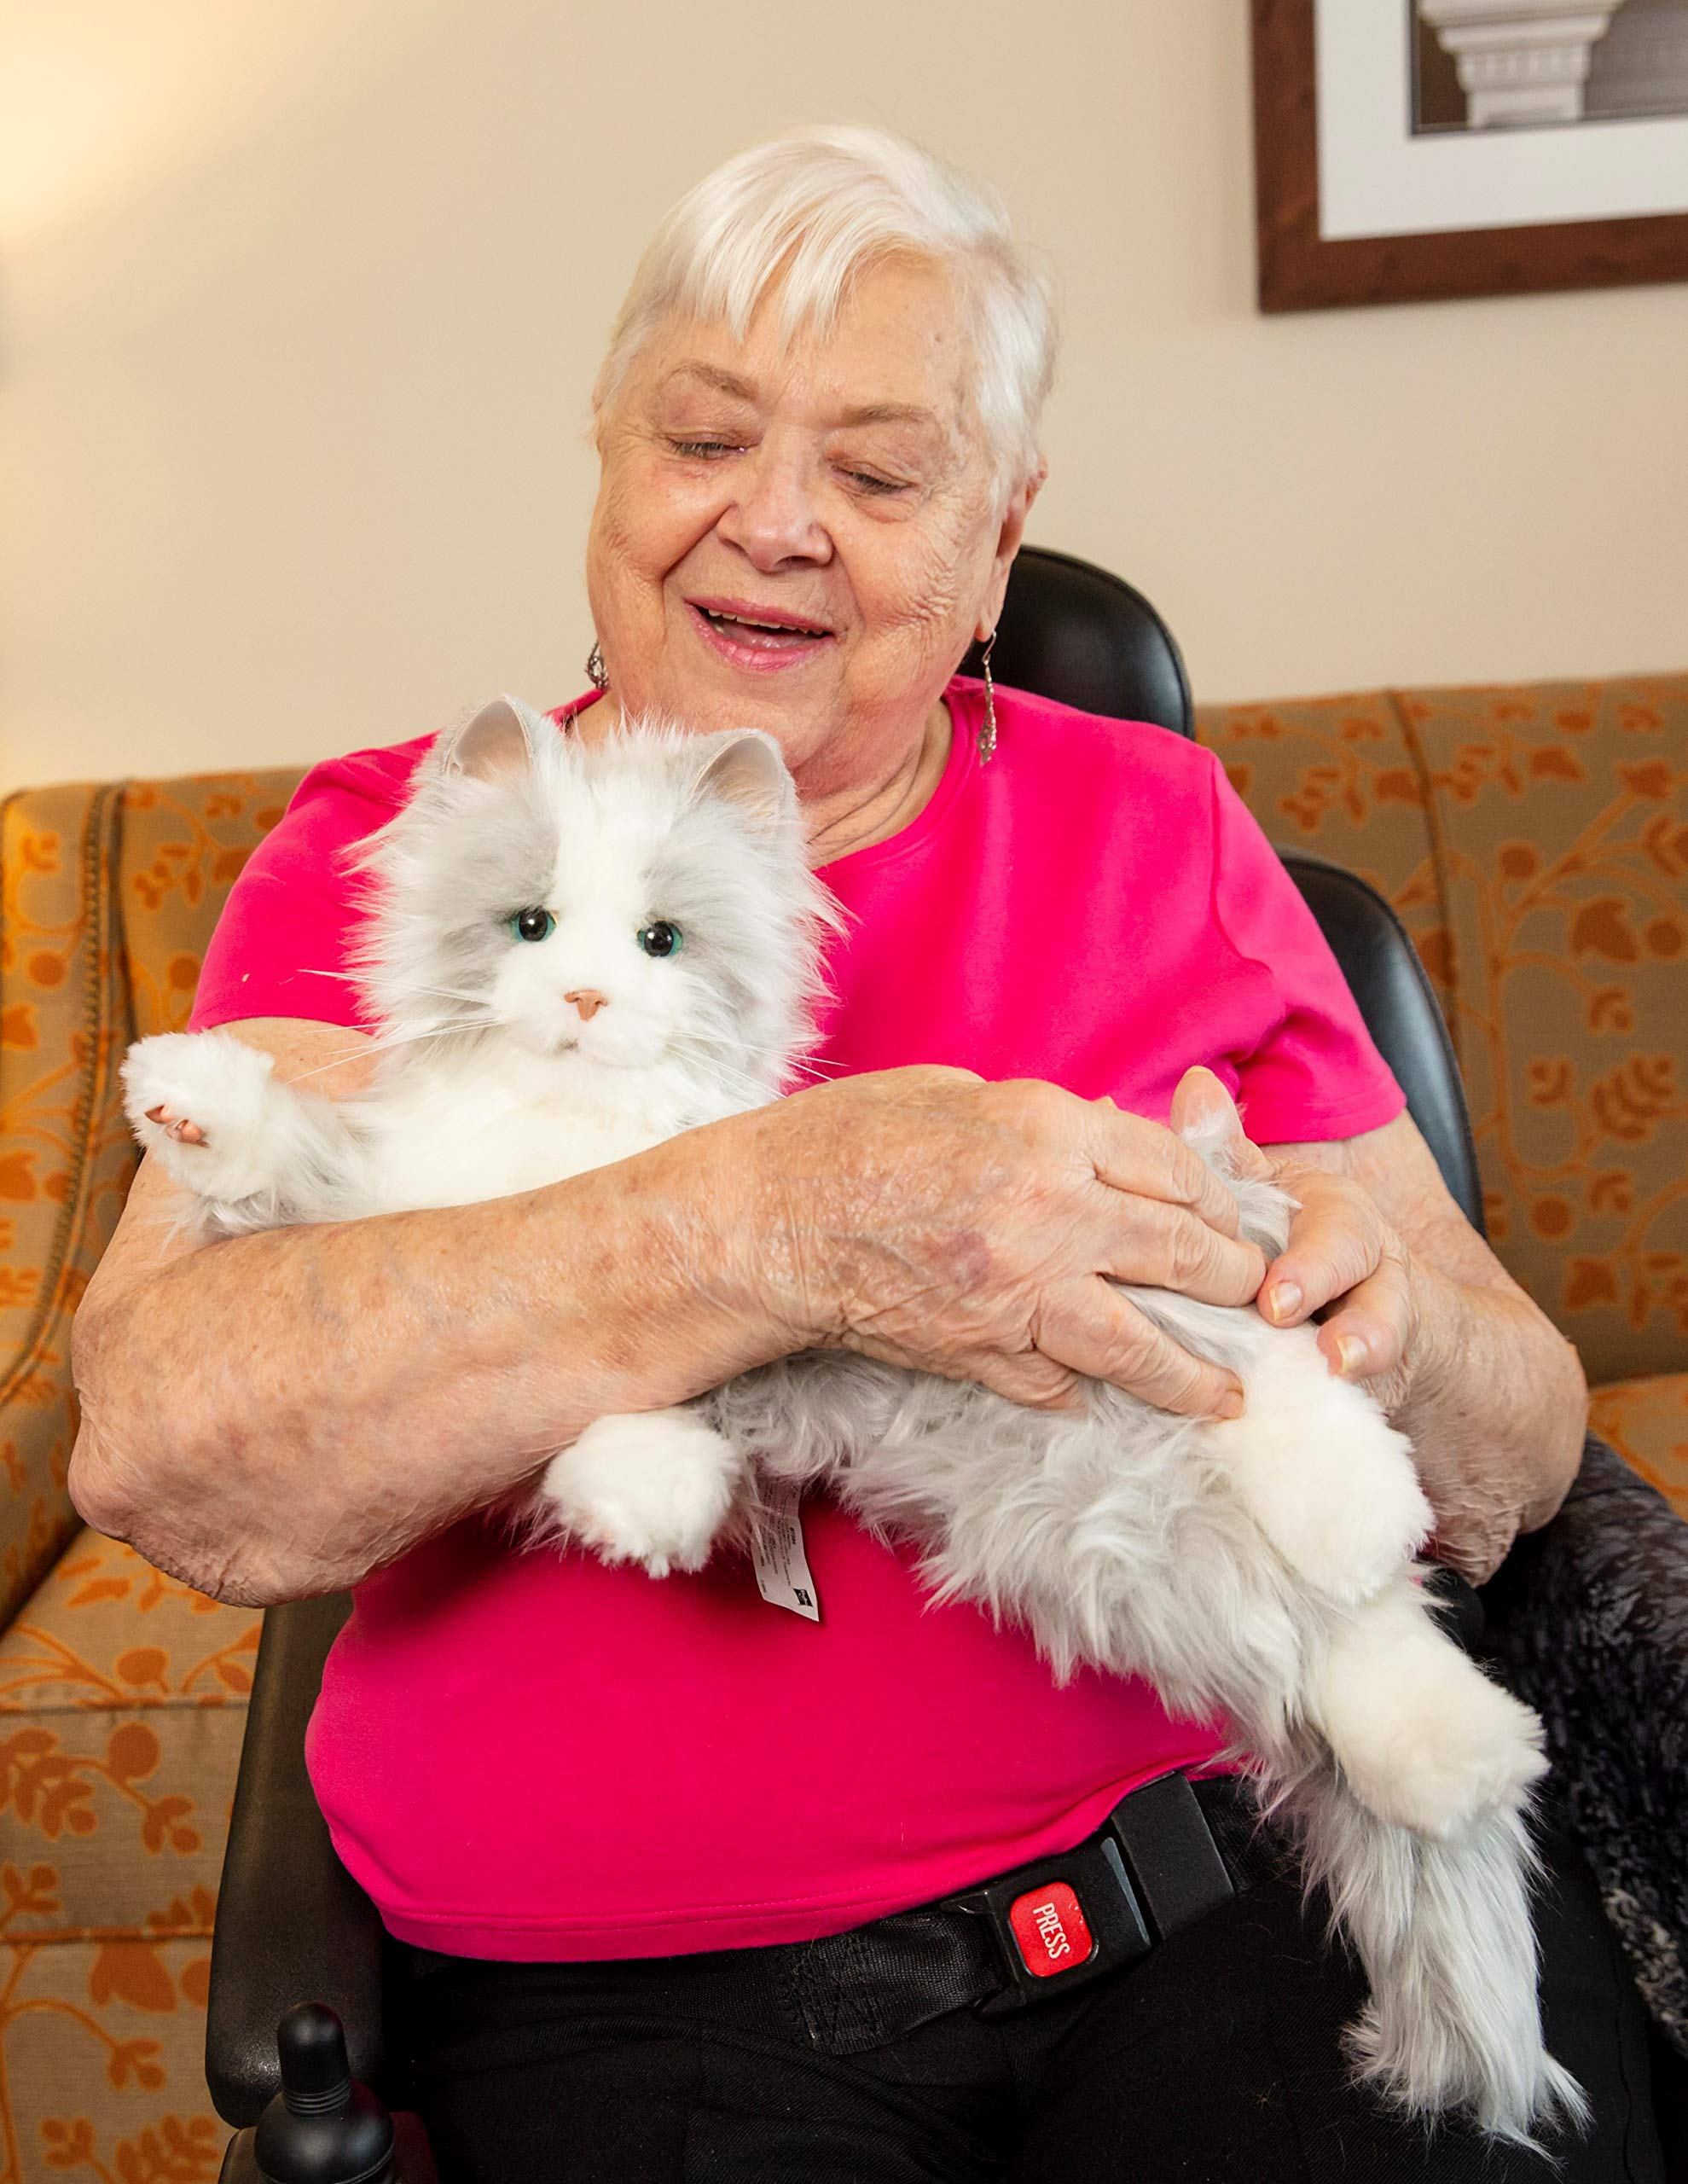 Joy for All Robotic Reclining Silver Grey Cat - for Ages 2 to 102 by Memorable Pets (Image #1)